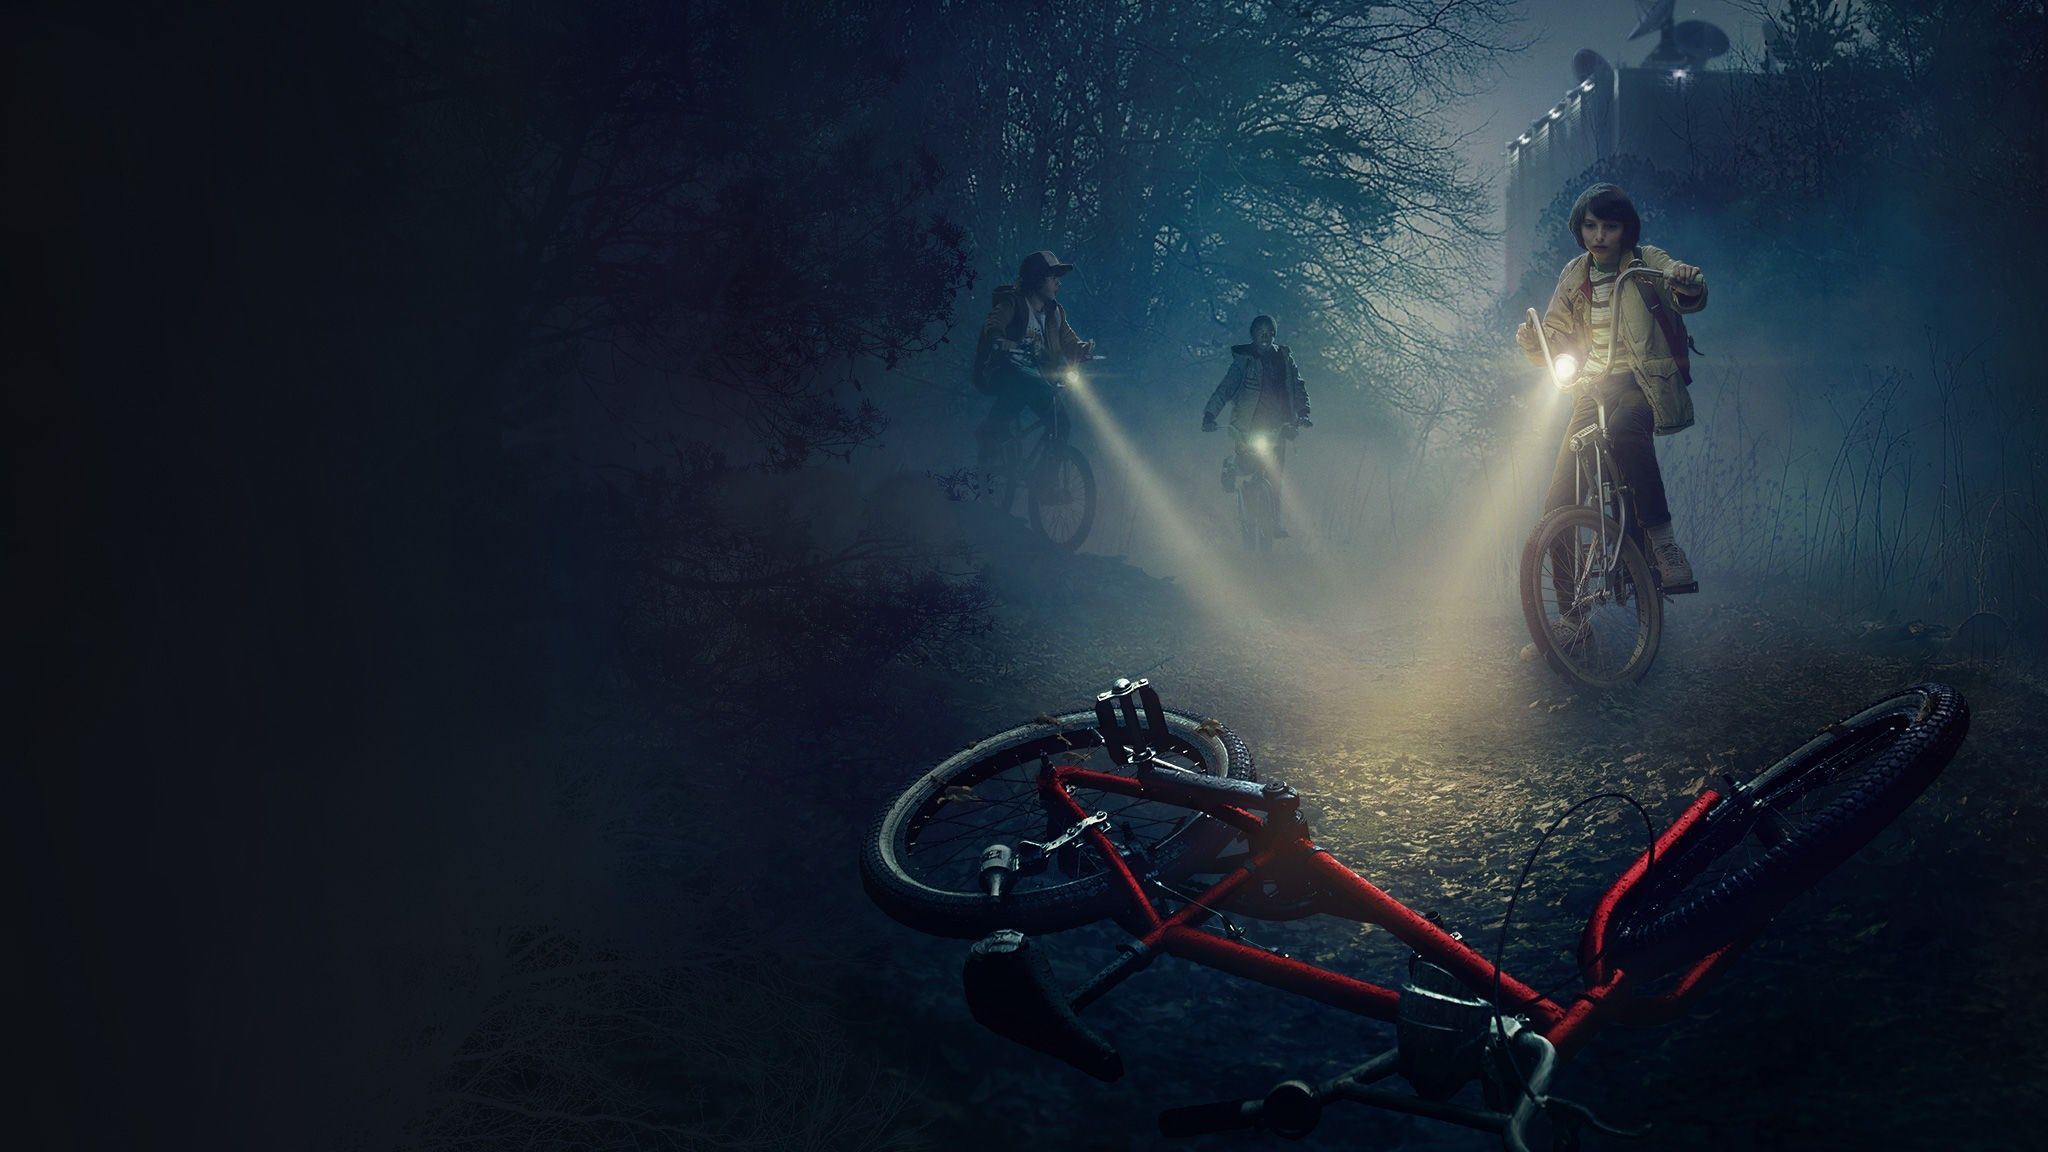 Stranger Things Wallpaper For Large Desktop Stranger Things Category Stranger Things Stranger Things Netflix Affiche Film